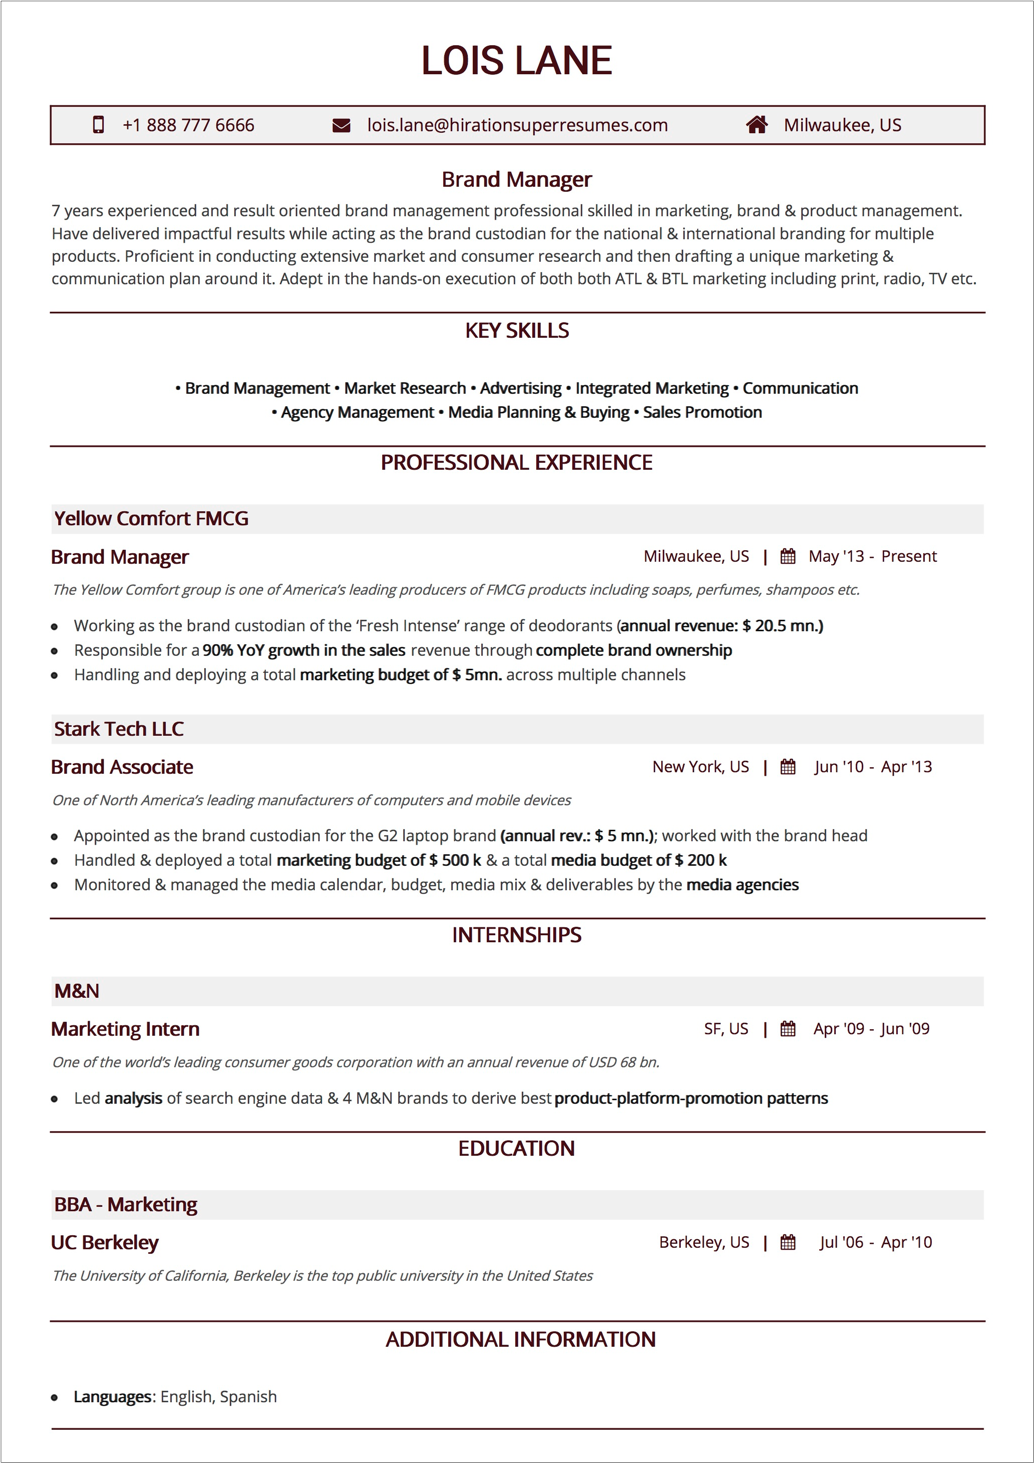 Reverse Chronological Resume Format Business Analyst